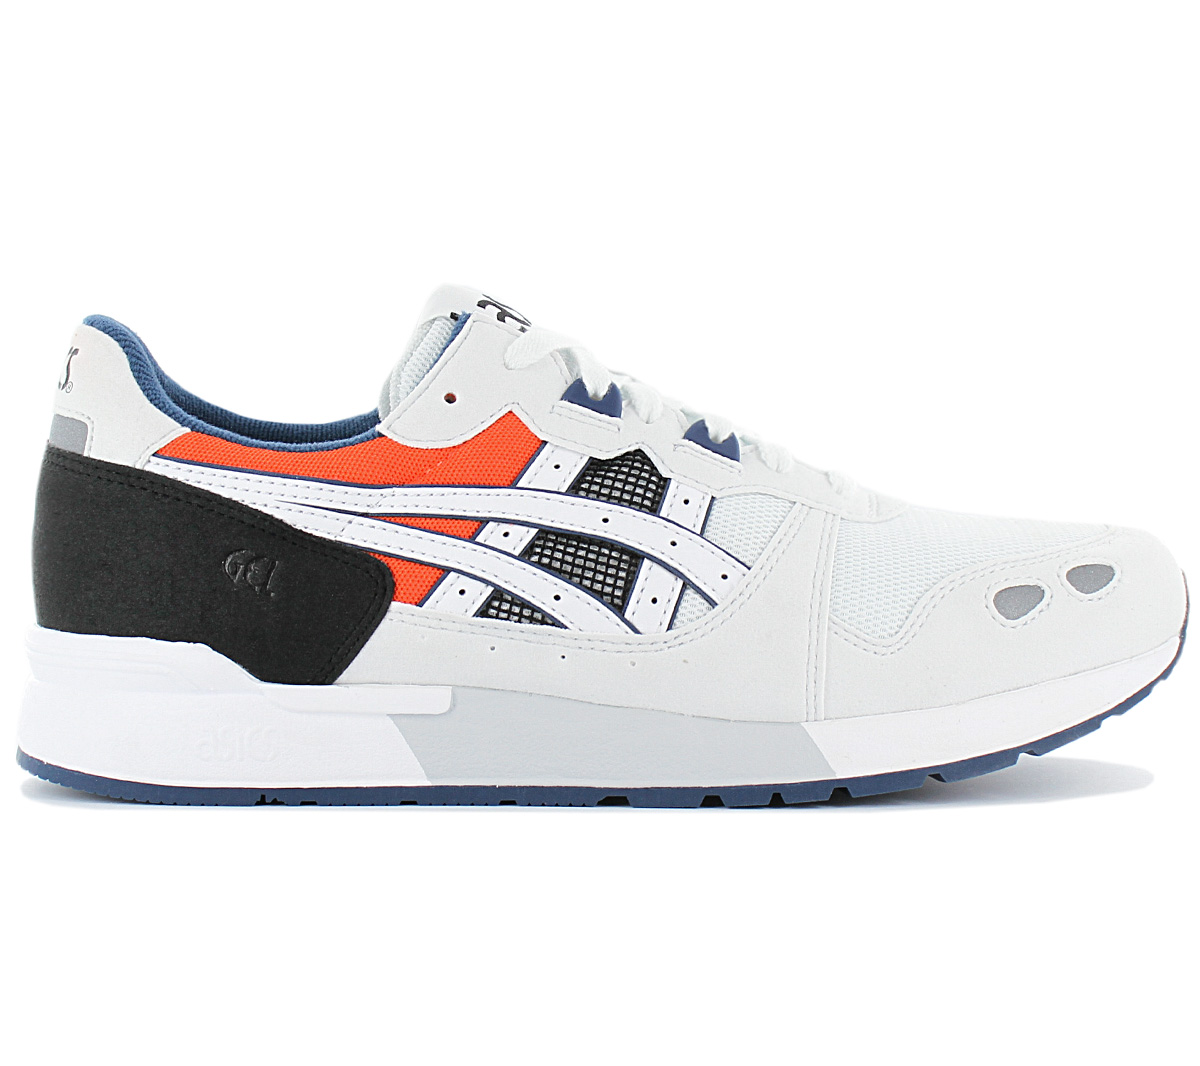 2a2a626d1ada Asics Tiger Gel-Lyte Men s Sneakers Shoes White H825y-0101 Trainers ...